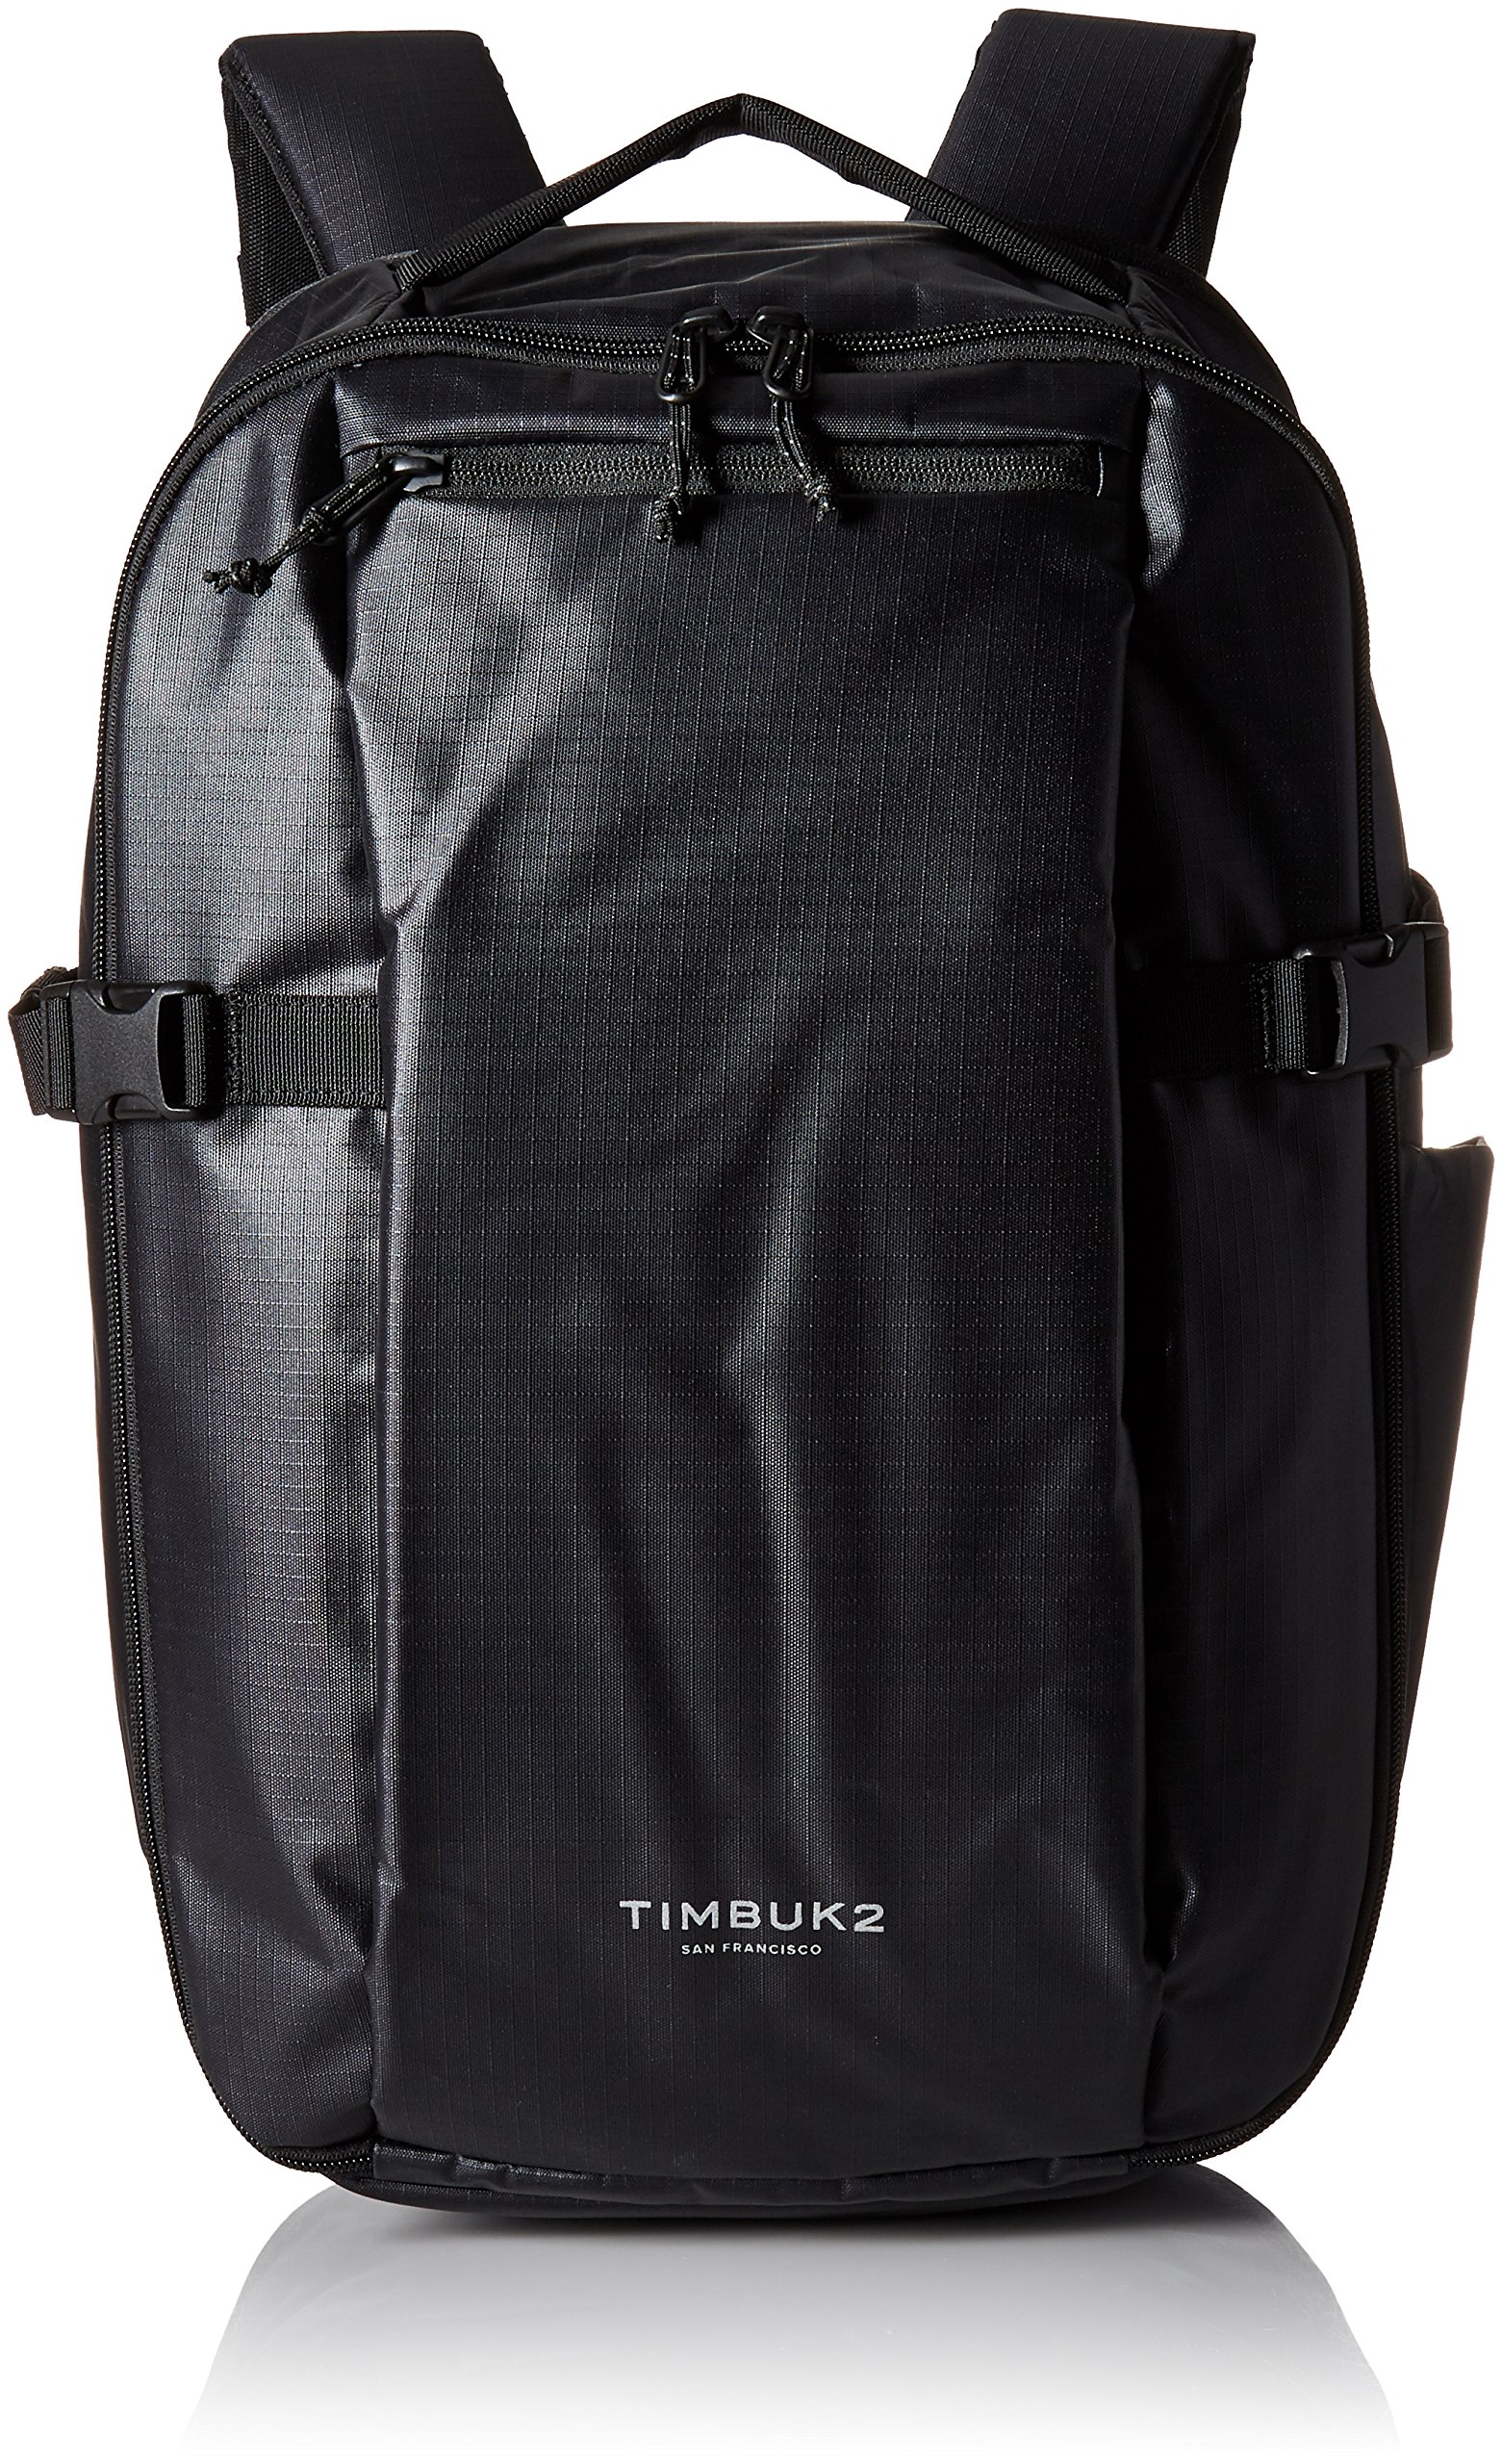 Timbuk2 Blink Pack, Jet Black, One Size by Timbuk2